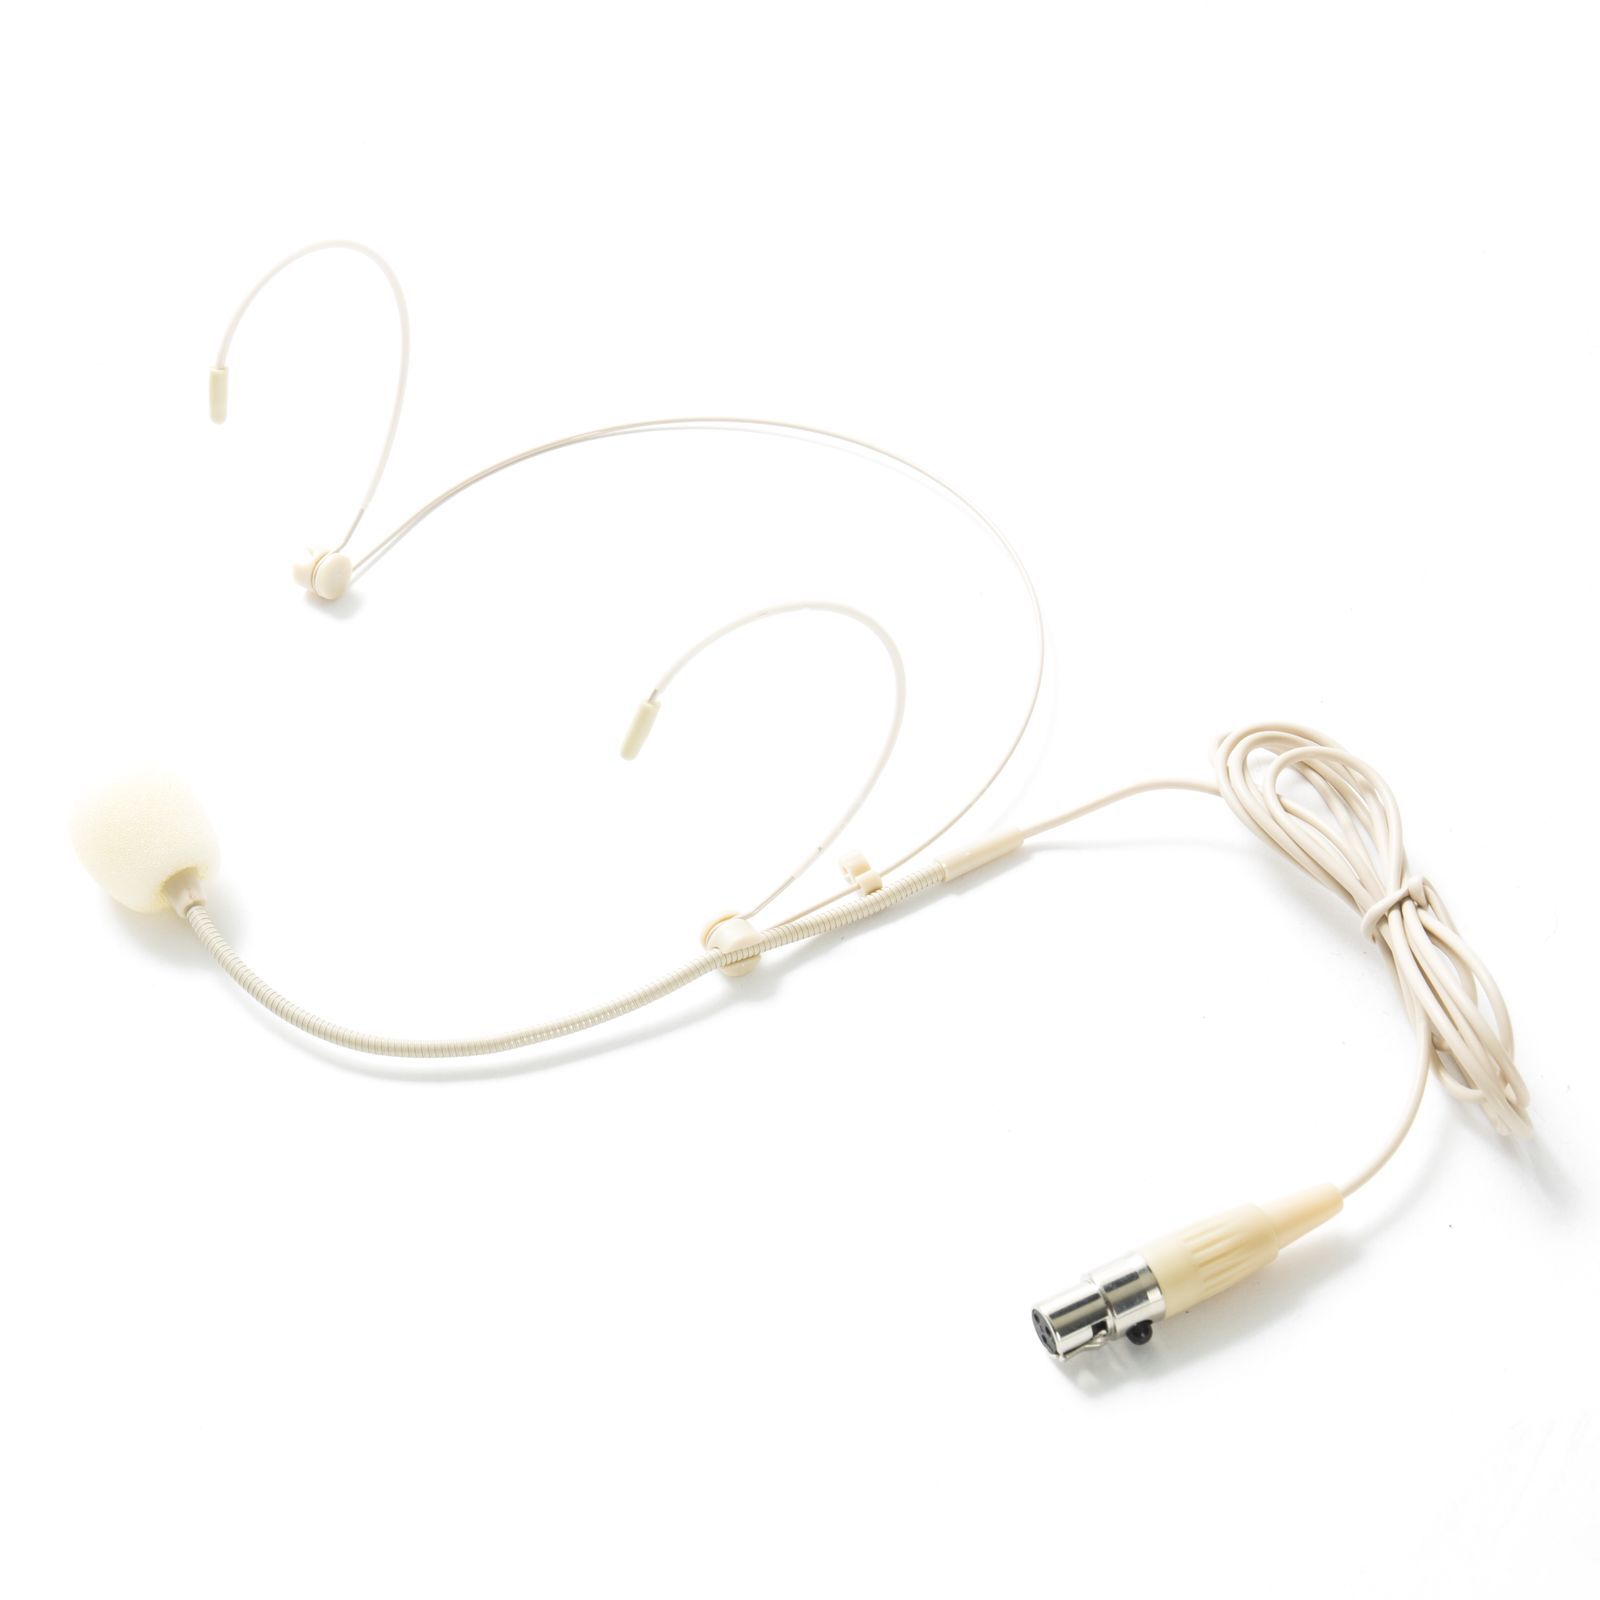 Fame audio MSW Pro HS Advanced mini XLR Headset, beige Productafbeelding